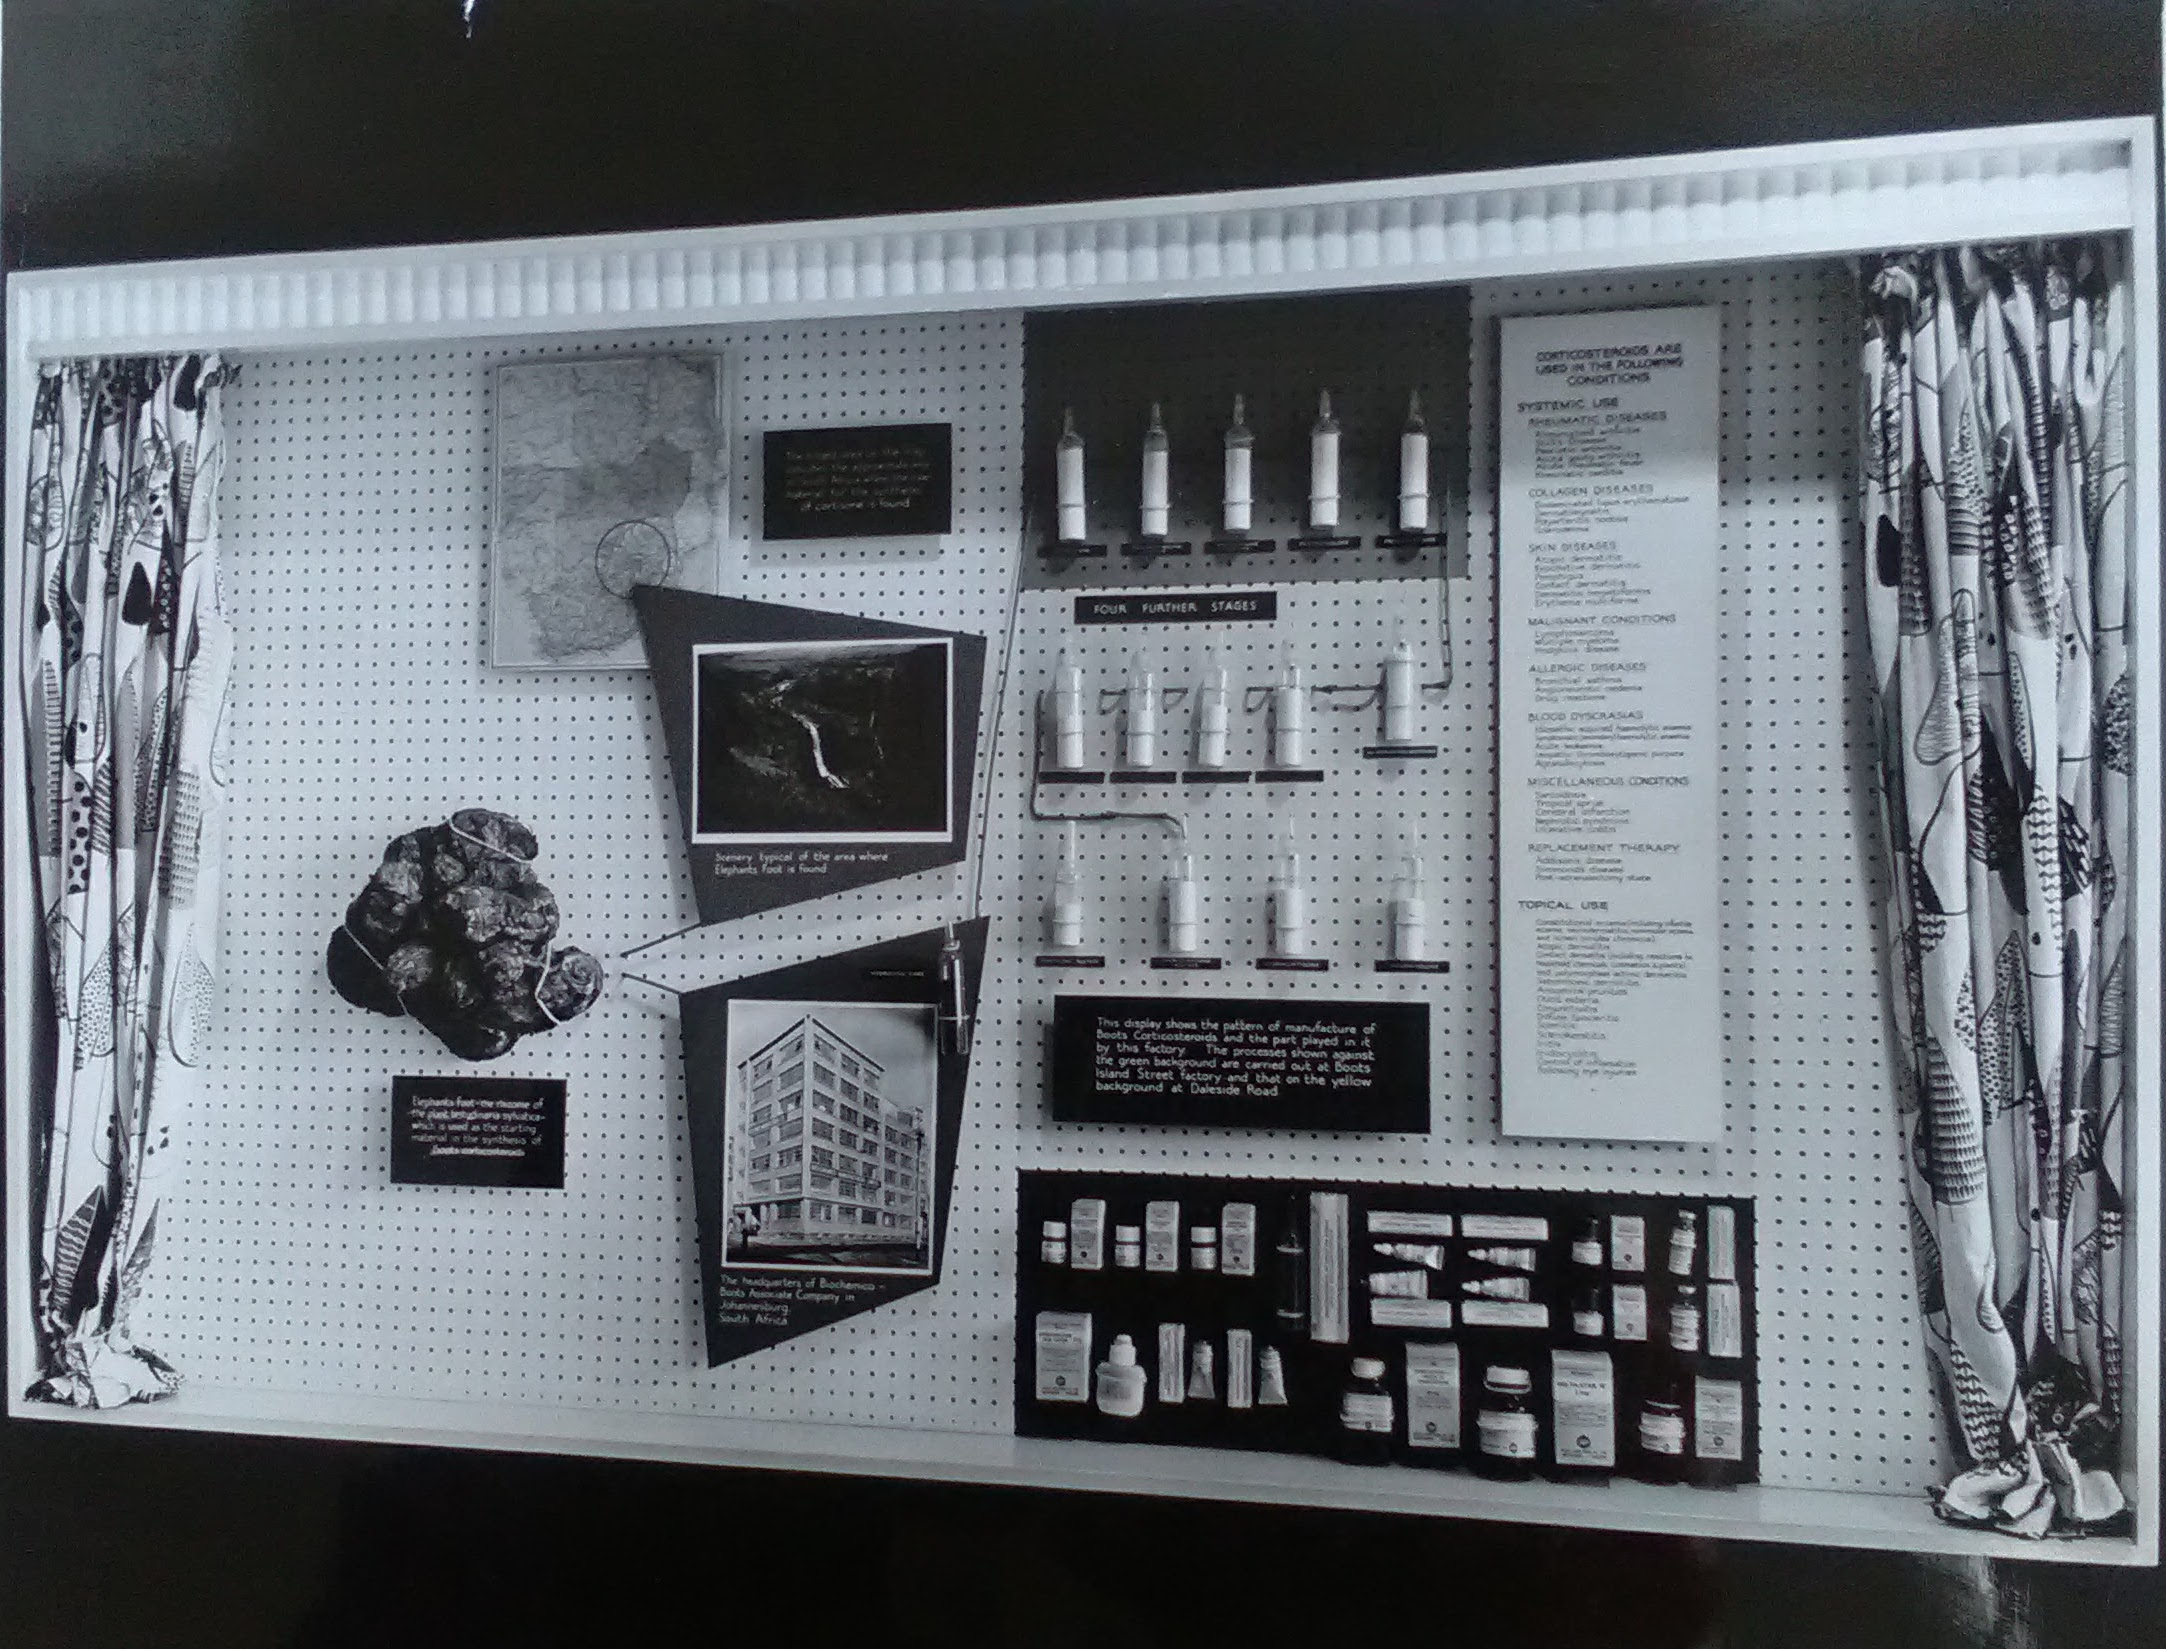 1950s display showing Elephants Foot yam, the Biochemico factory in Johannesburg, and stages of the chemical process to make Boots corticosteroid products. Boots Archive, Nottingham.